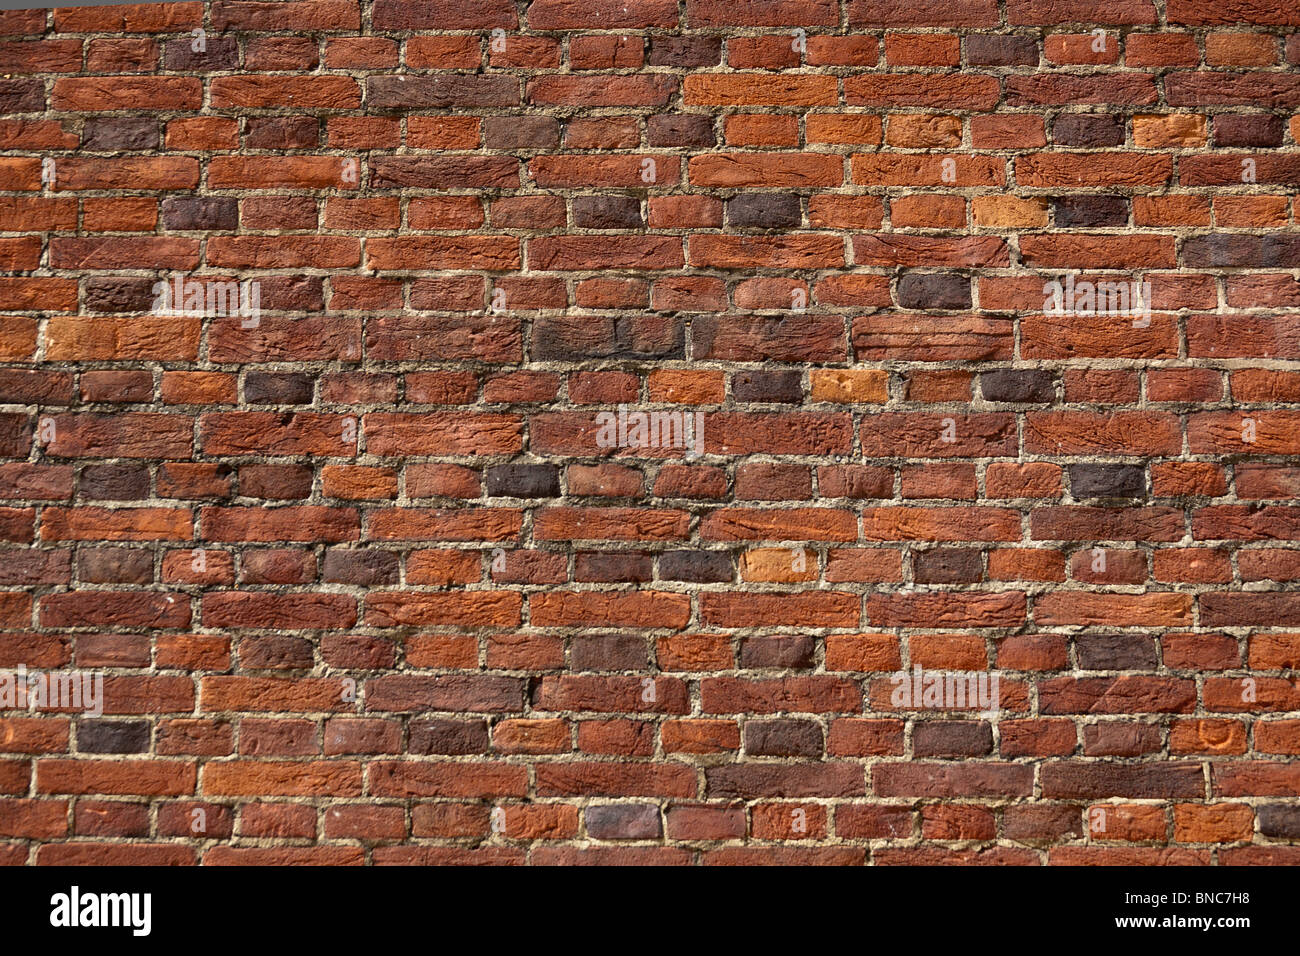 Red Brick Wall. A section of a red or orange brick wall. Good for backgrounds. - Stock Image